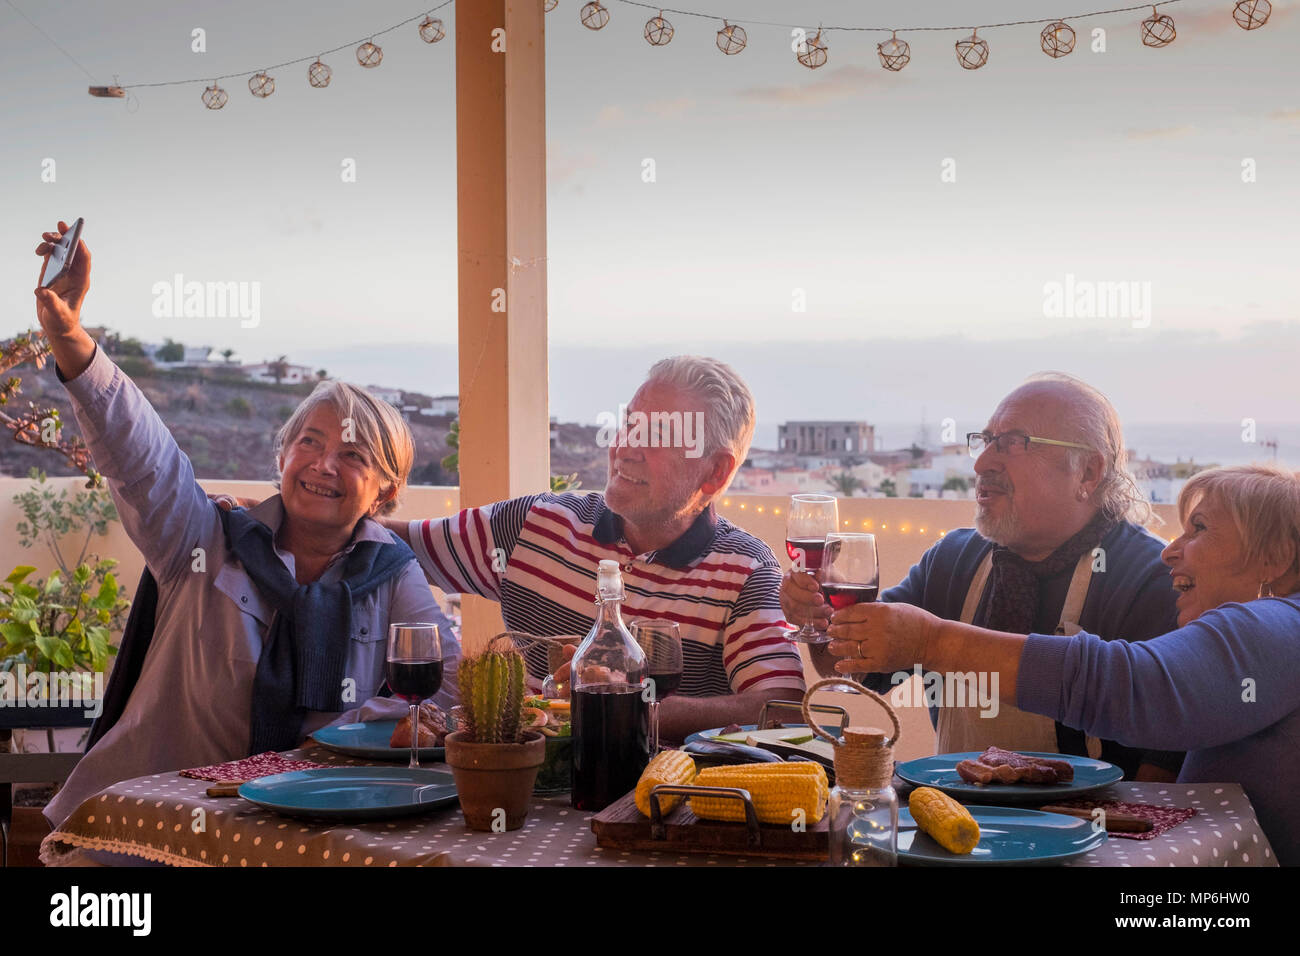 group of adults friends elderly retired having fun taking a picture like selfie all together during a dinner outdoor on the terrace rooftop. celebrate - Stock Image